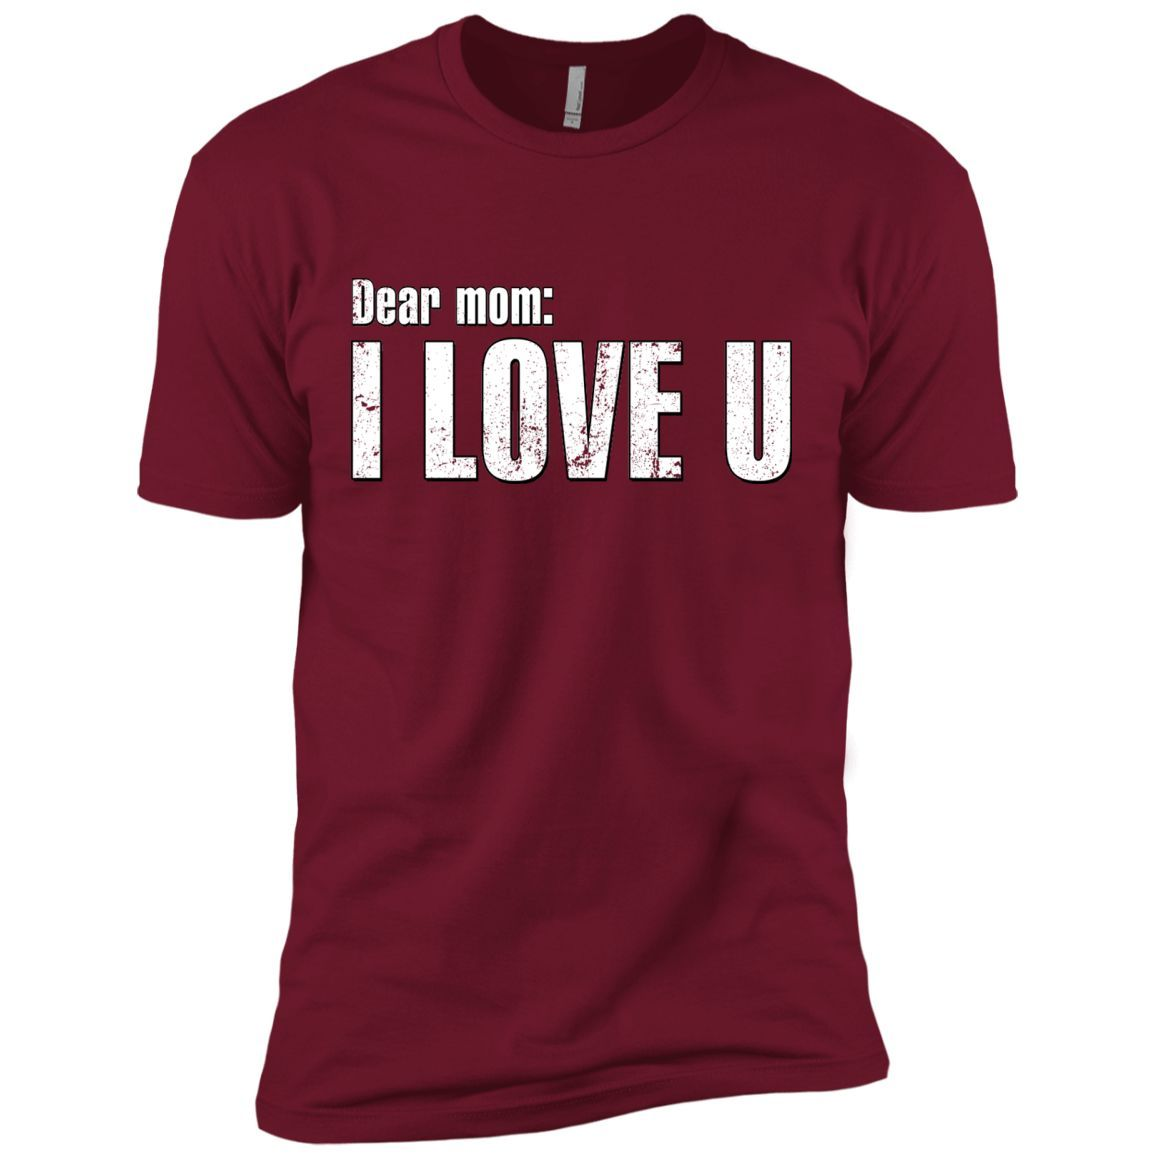 Dear mom I love you Mother's day gifts Next Level Premium Short Sleeve Tee